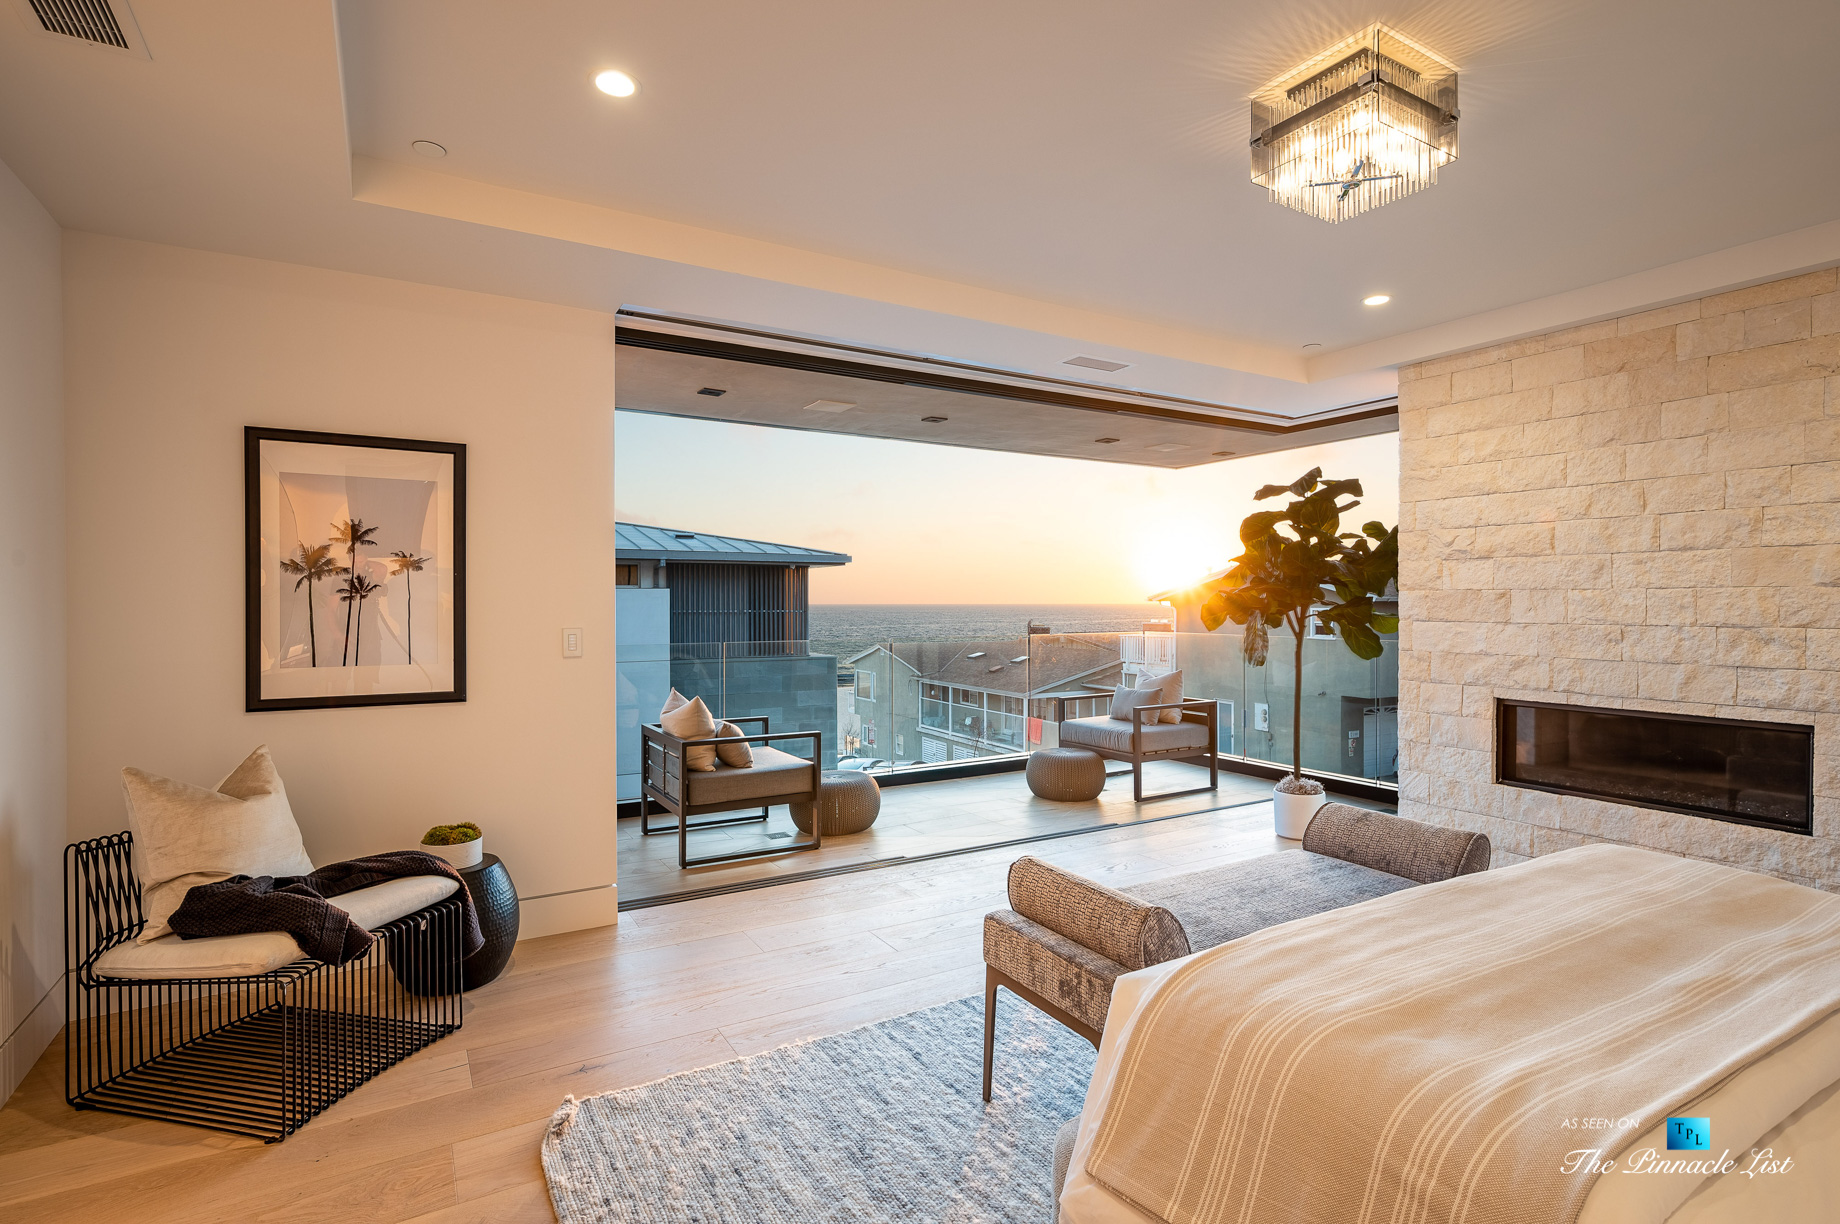 2016 Ocean Dr, Manhattan Beach, CA, USA – Master Bedroom Sunset View – Luxury Real Estate – Modern Ocean View Home